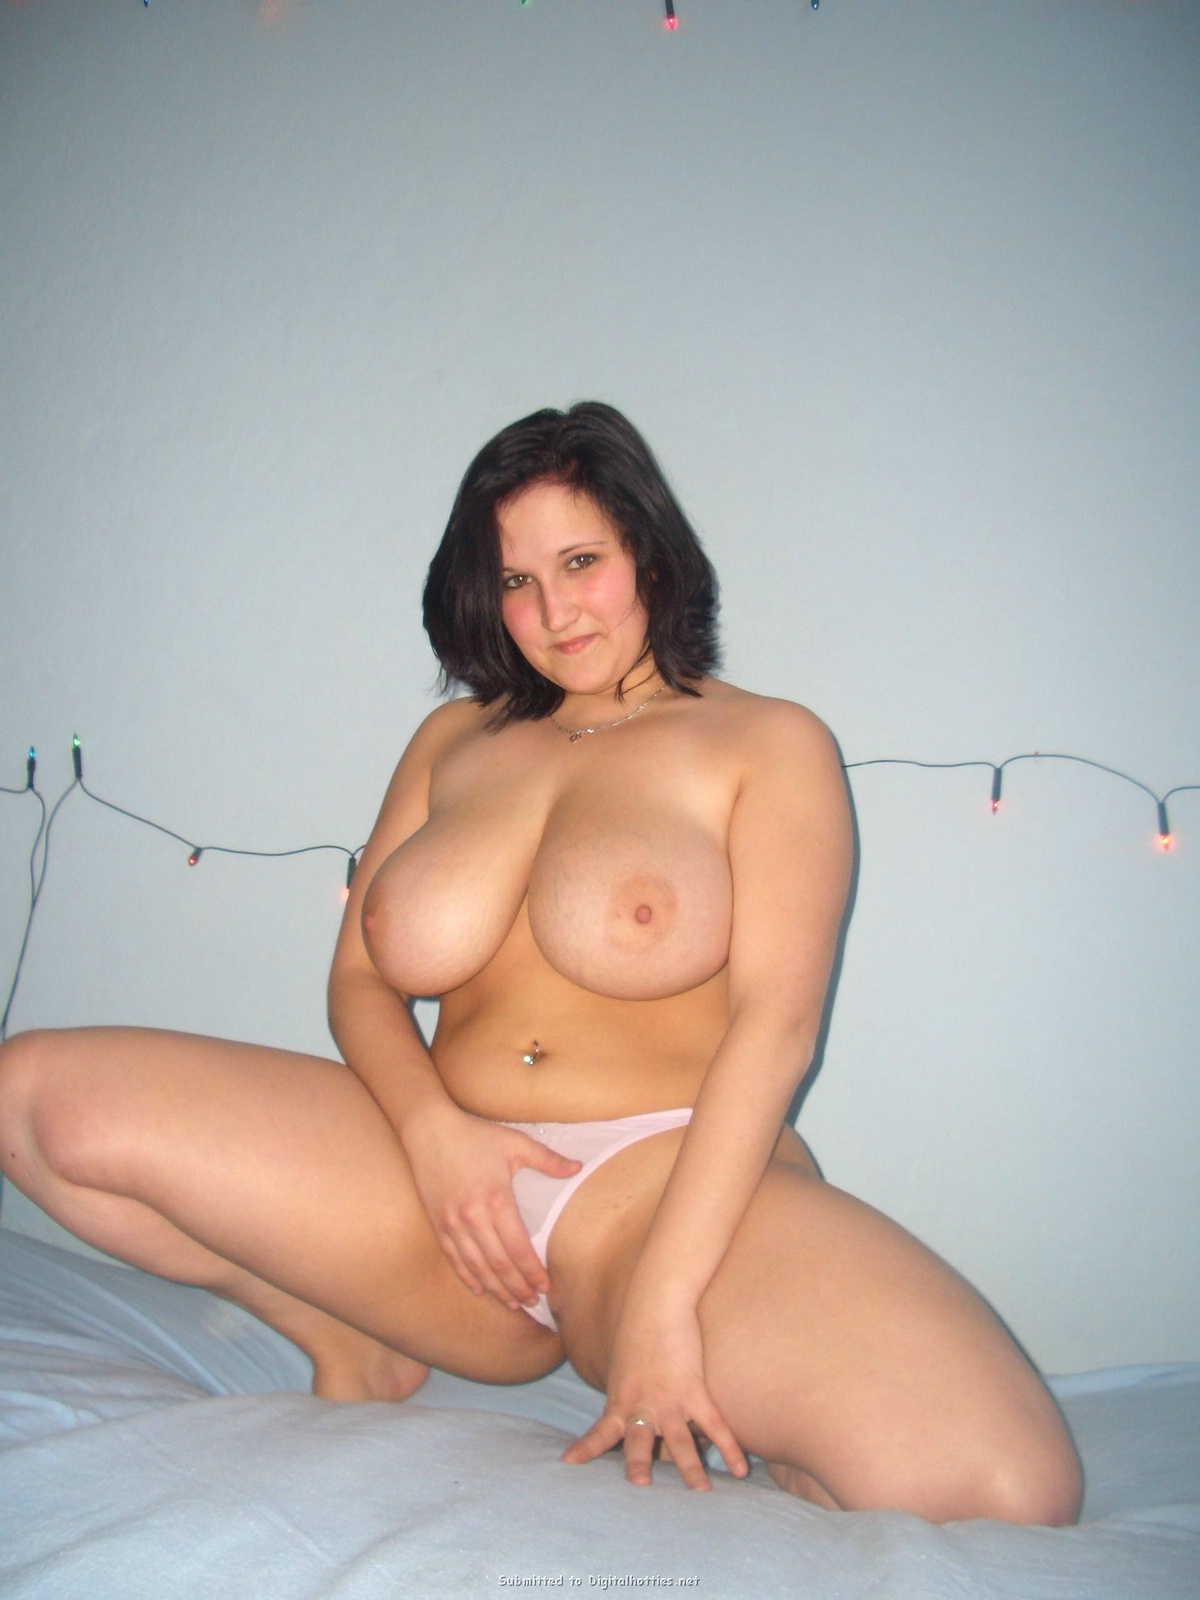 chubby nude kind girl